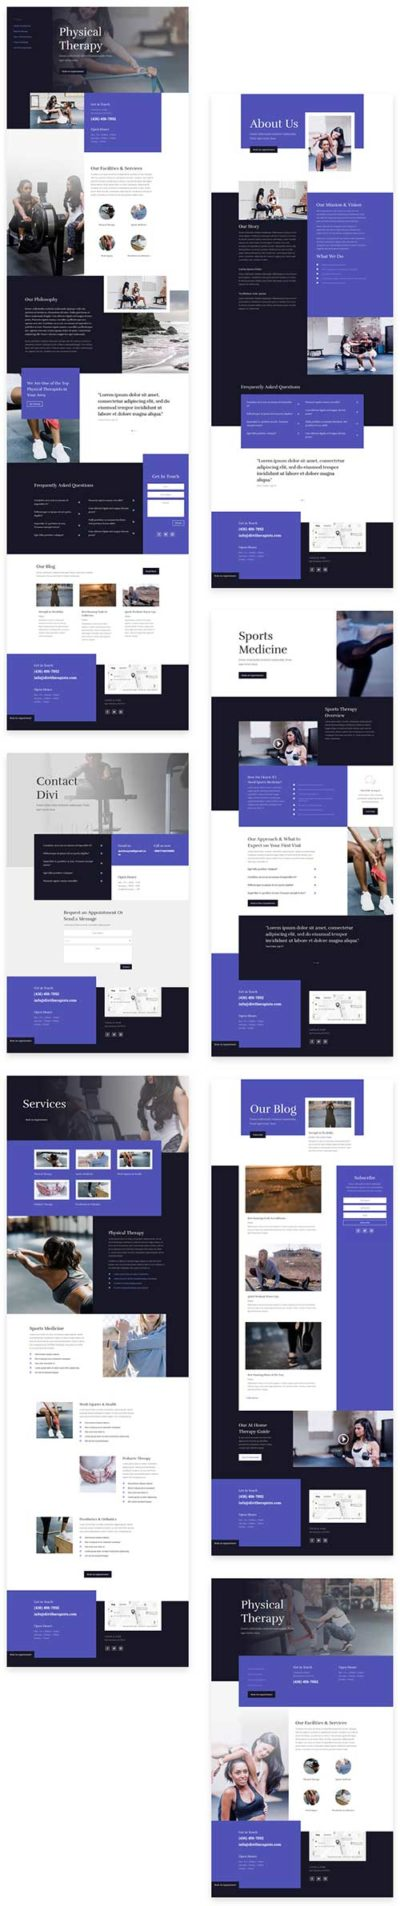 divi layouts physical therapist